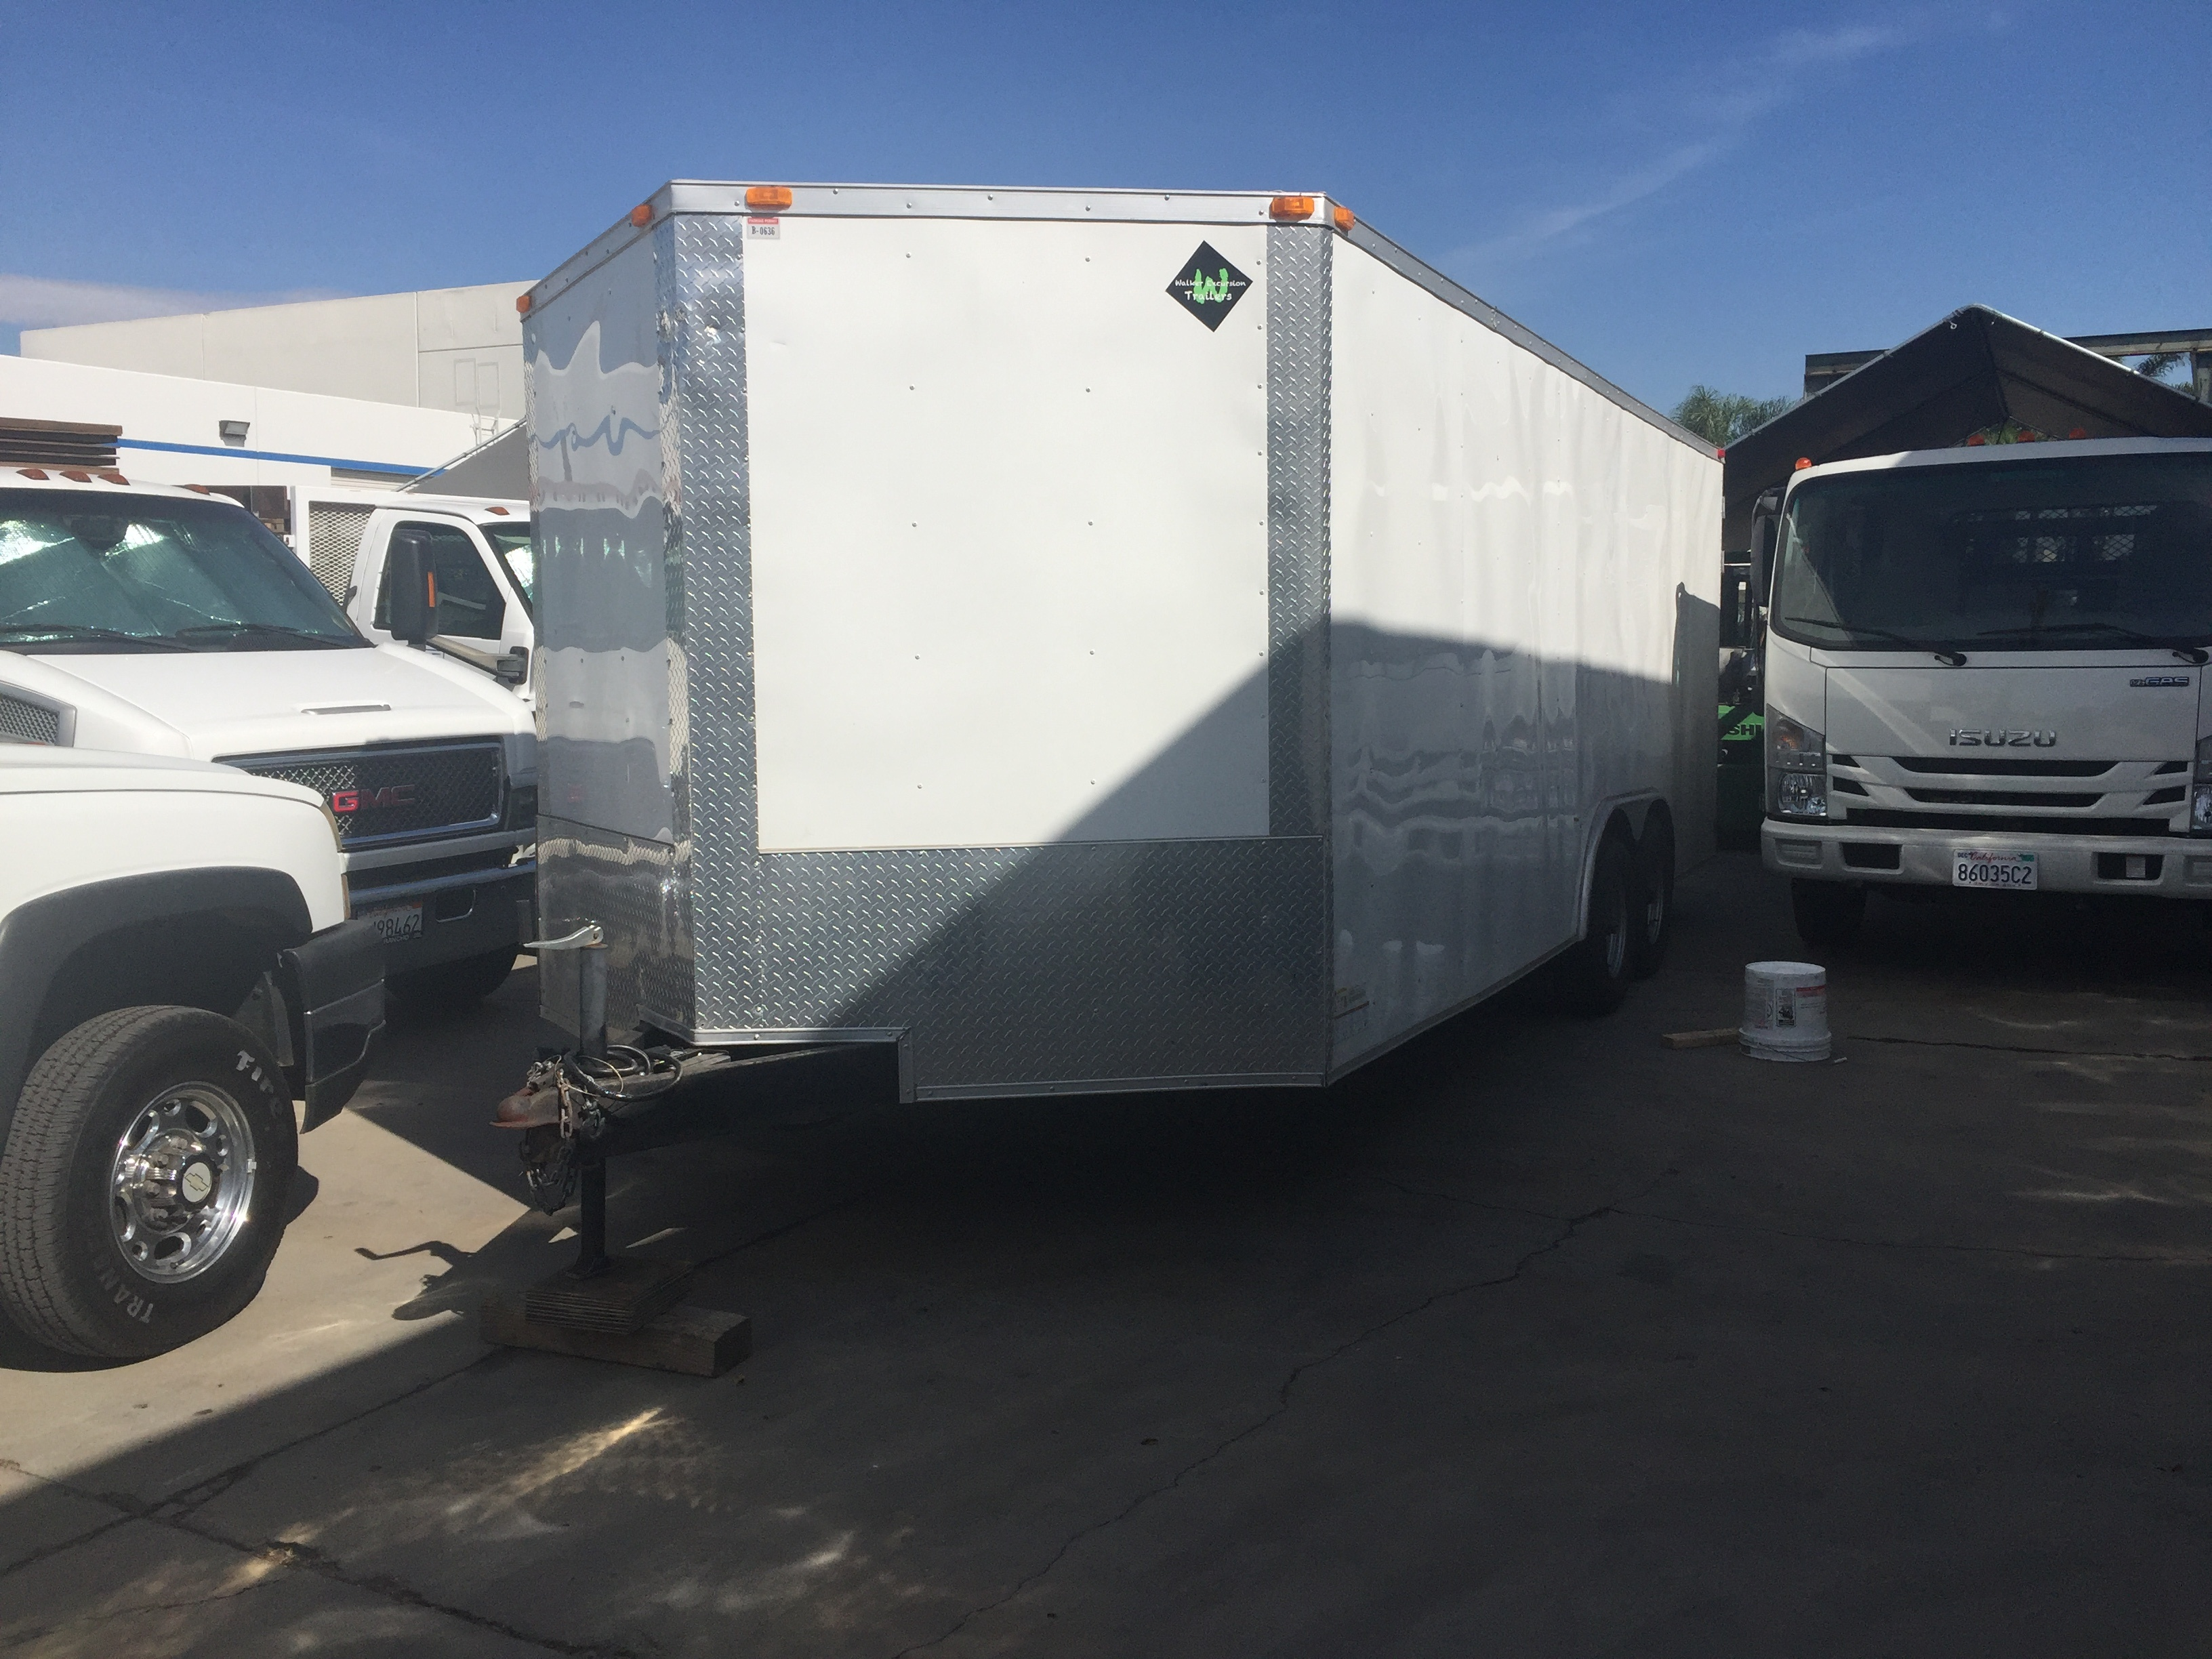 Protect your trailer against theft   follow my tips to guard